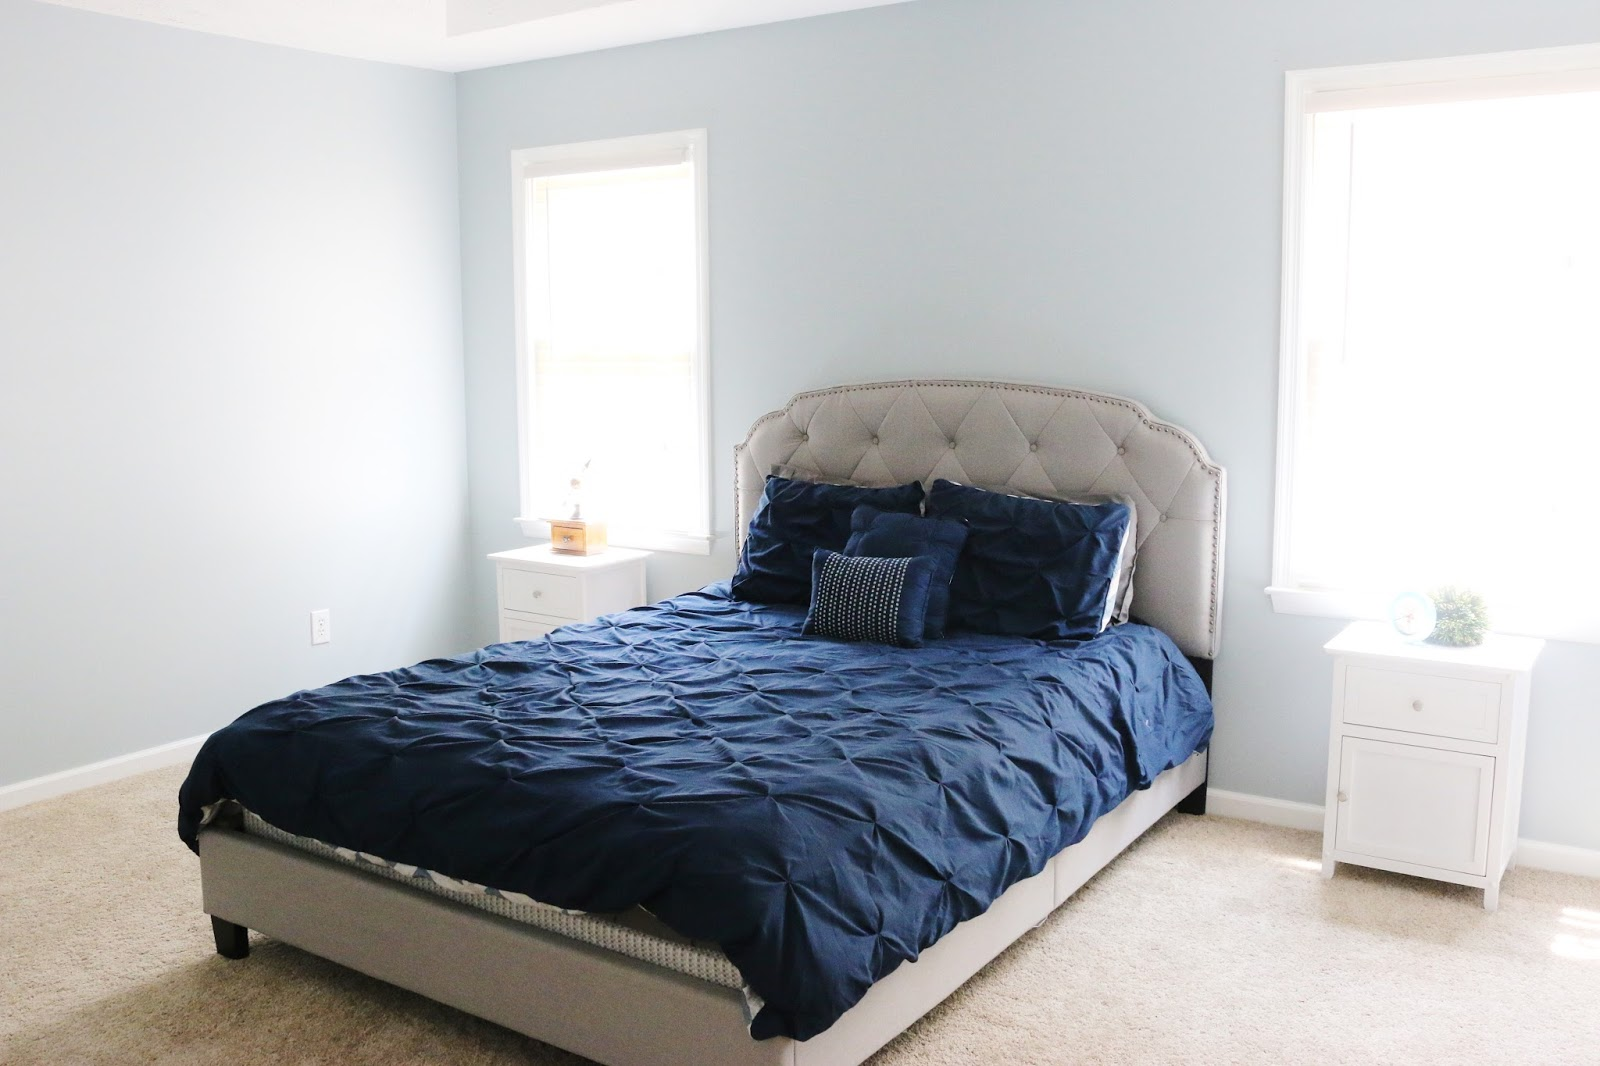 Home Tour: The Master Bedroom (& VIDEO!) - The Happy Flammily